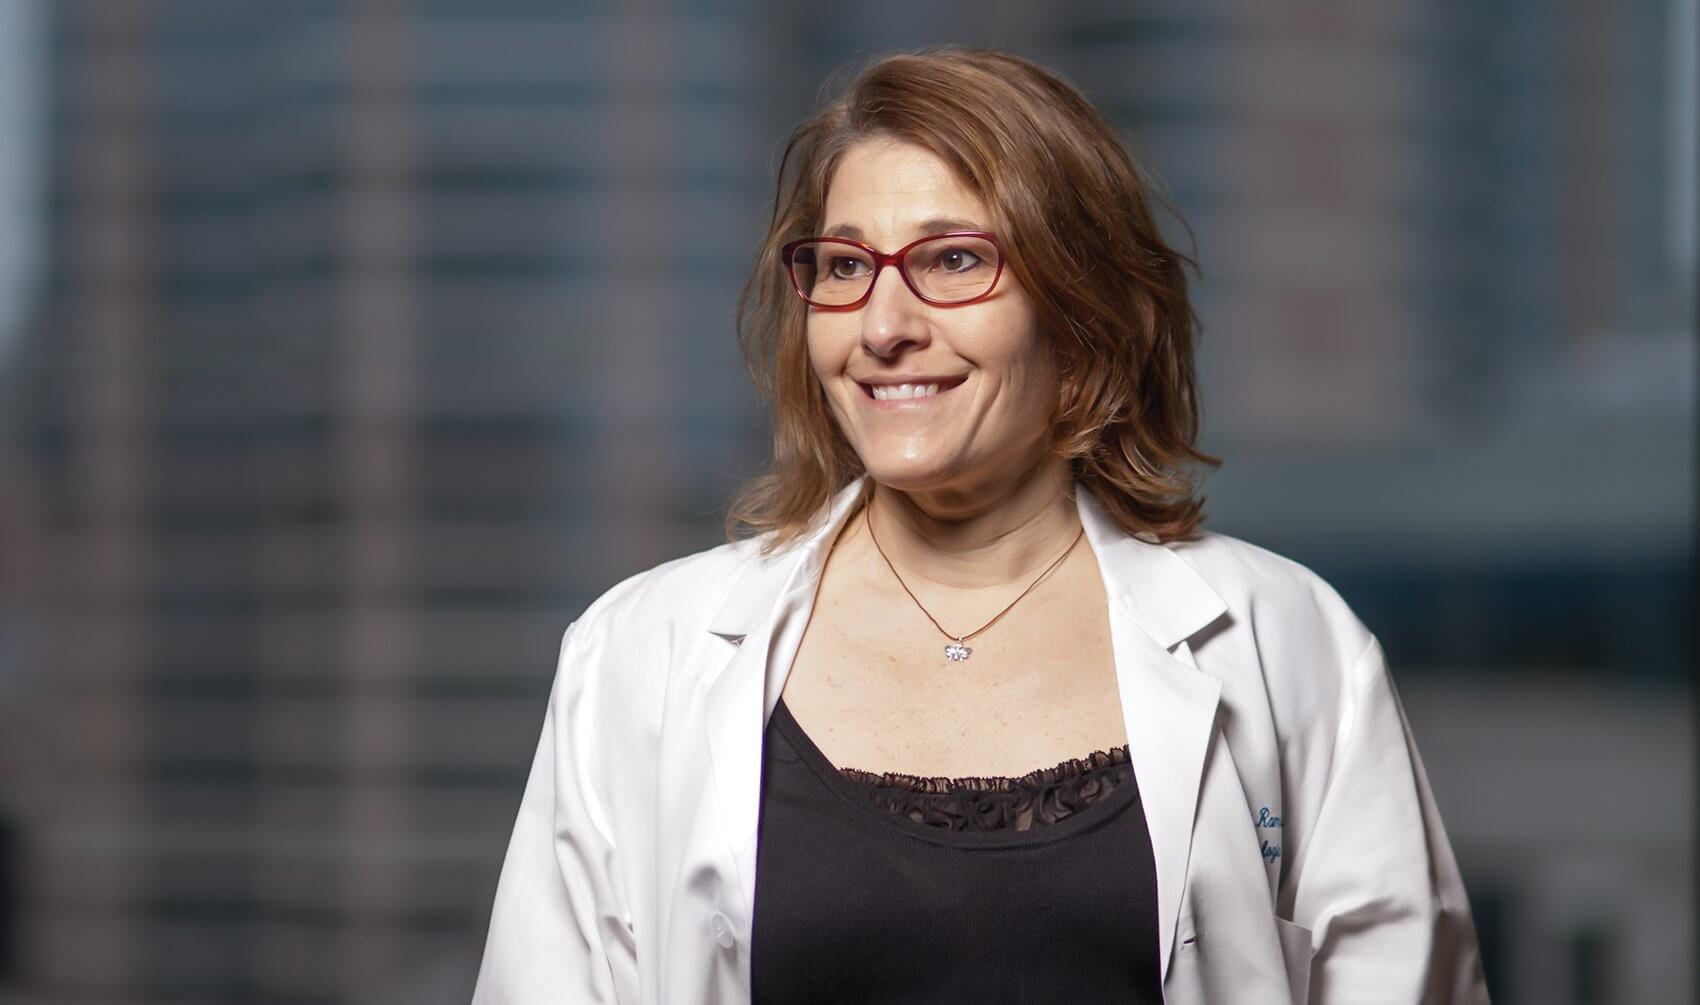 Lois Ramondetta, M.D., Professor of Gynecologic Oncology and Reproductive Medicine and Chief of Gynecologic Oncology at Lyndon B. Johnson General Hospital